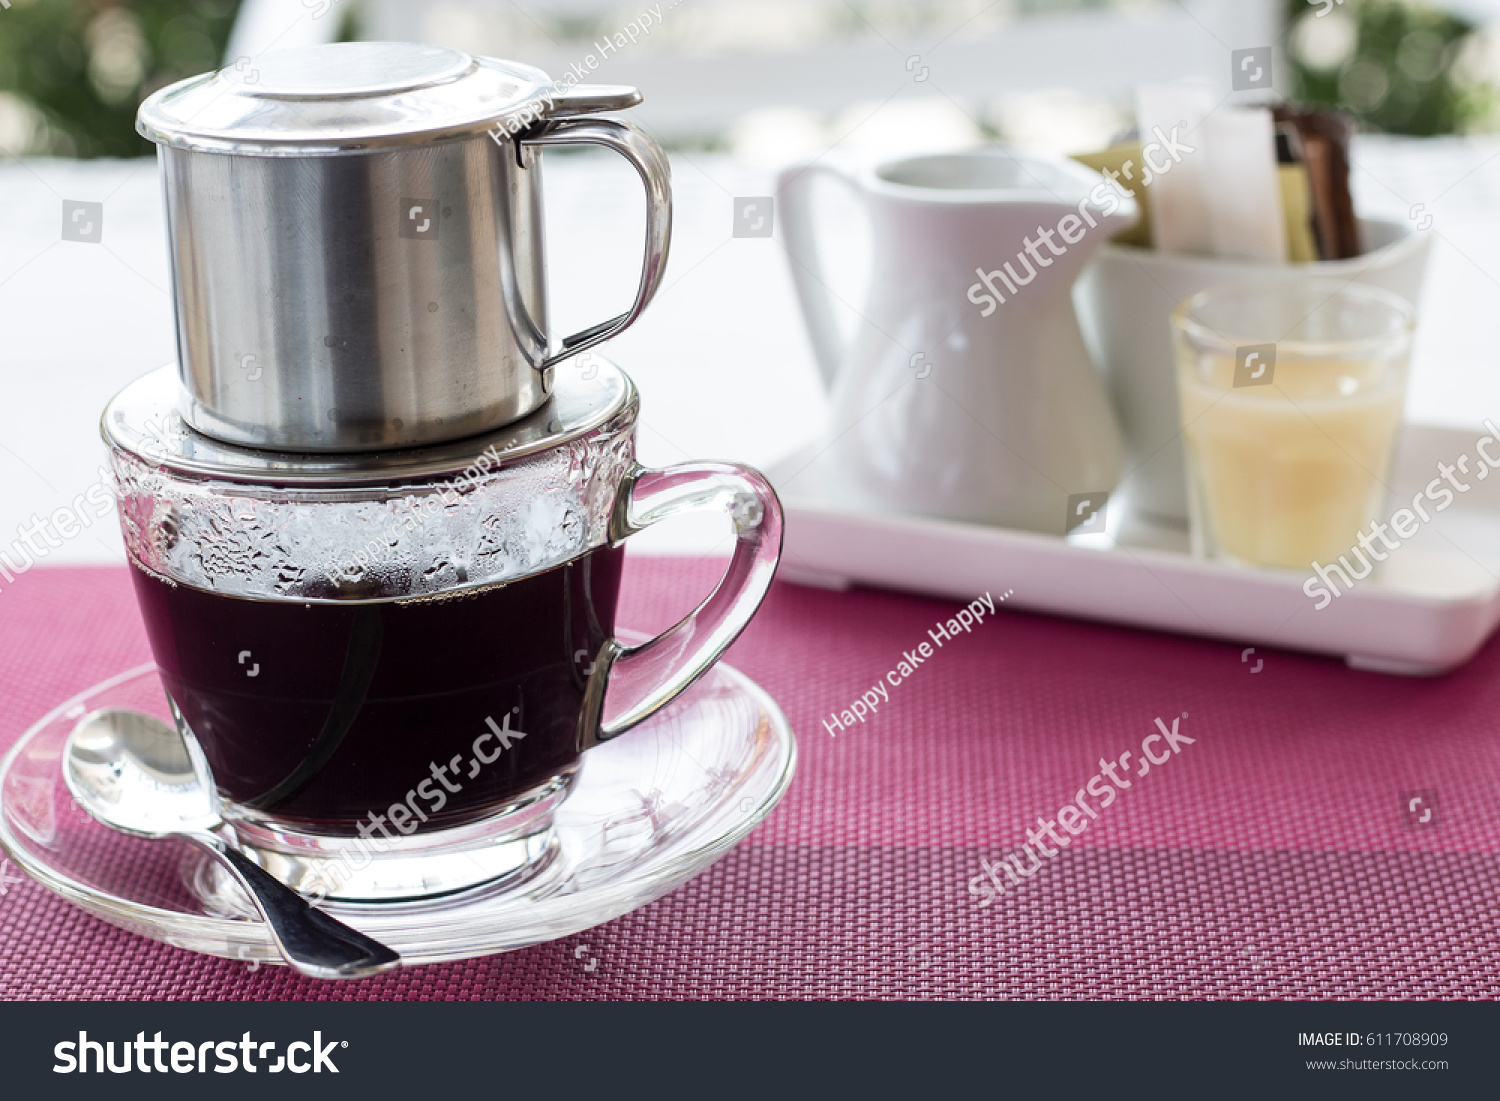 A clear cup of coffee with silver filter and served with milk and sugar background #611708909